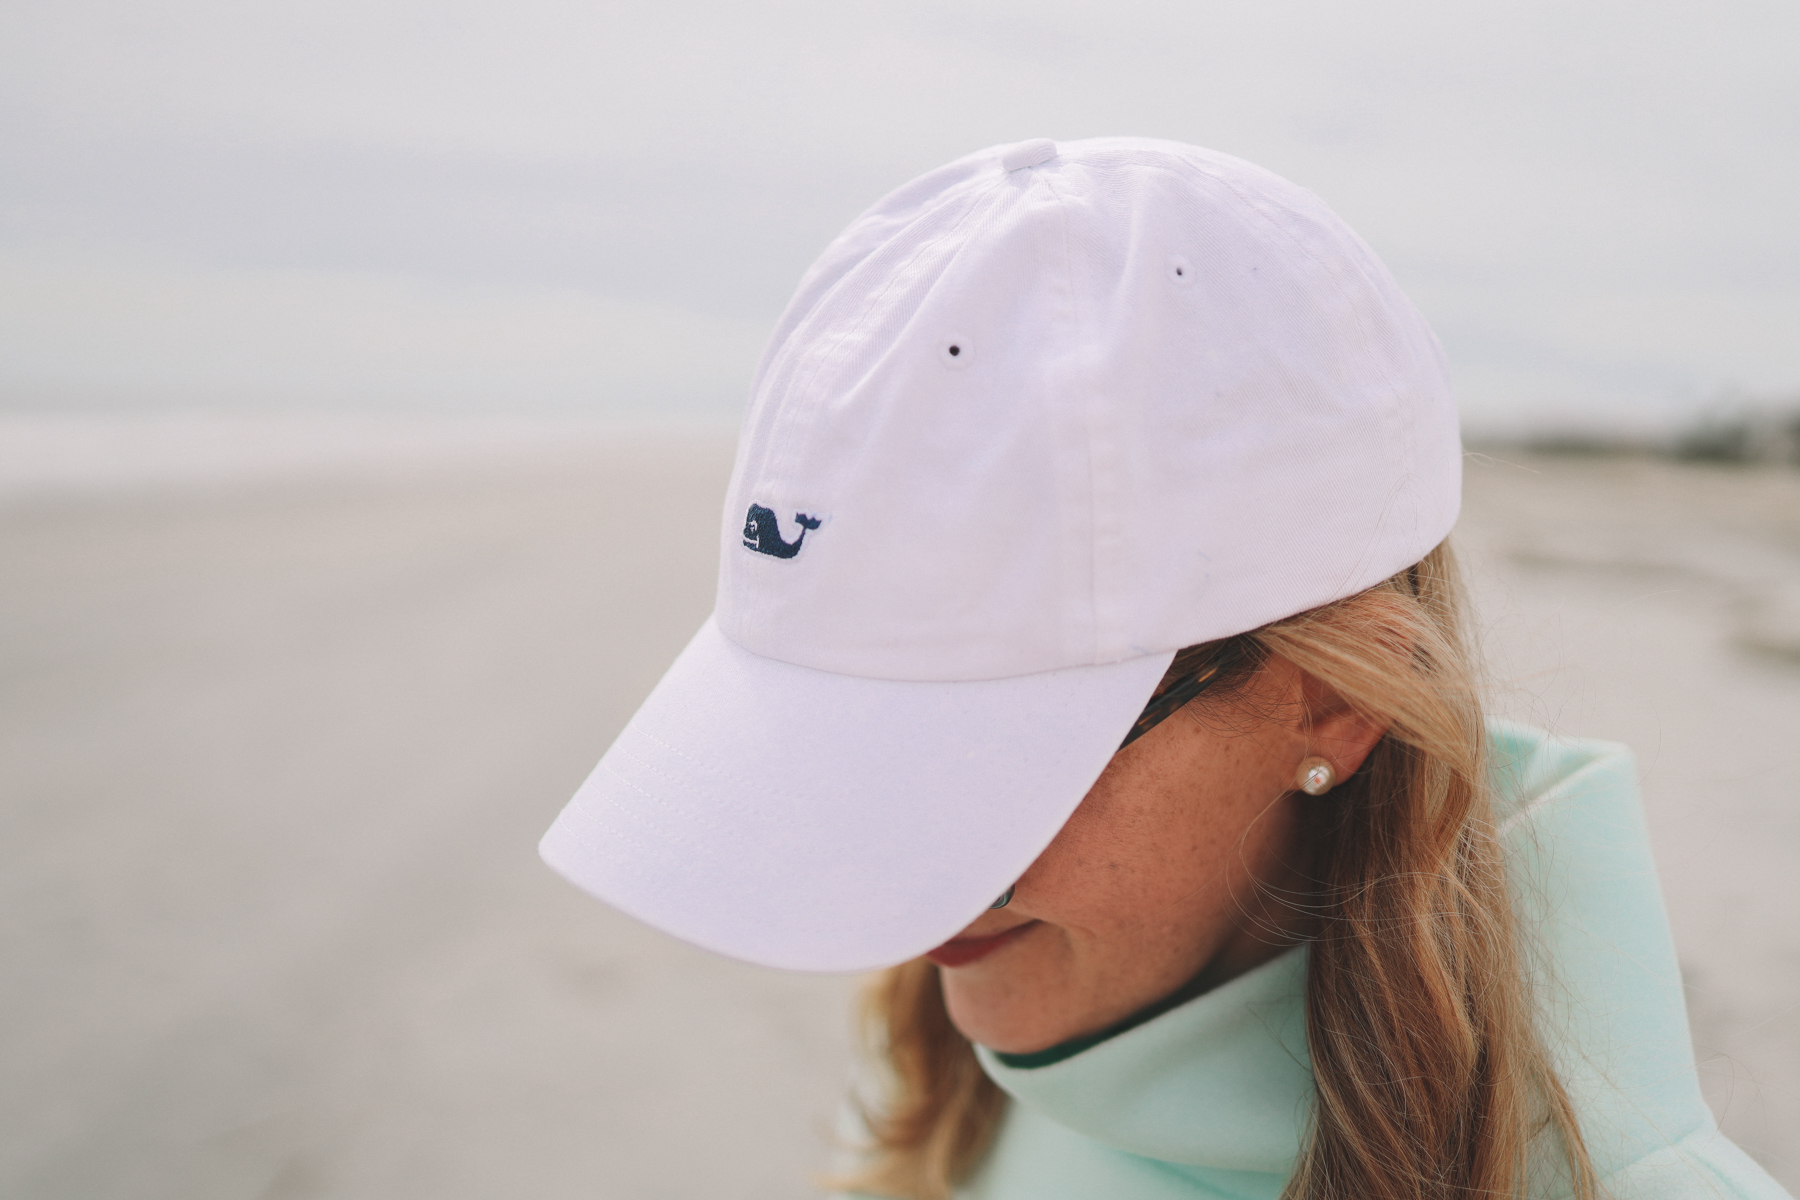 White Vineyard Vines Hat